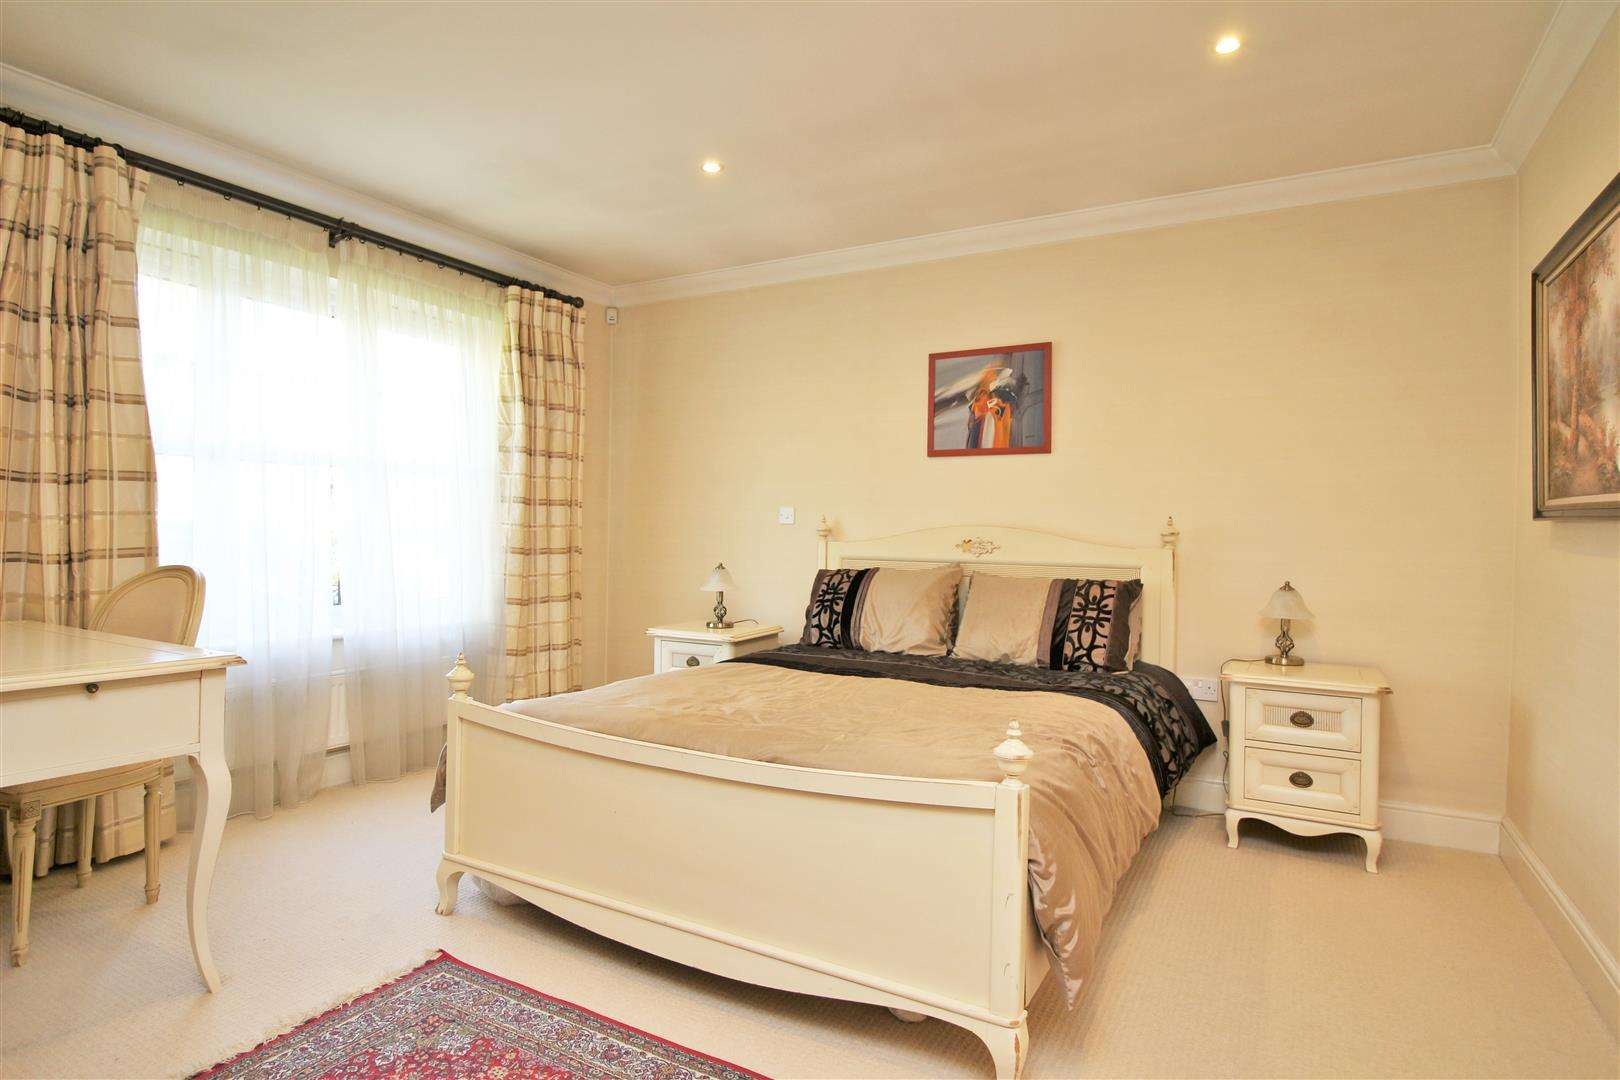 4 bed to rent in Bushey Heath - (Property Image 8)